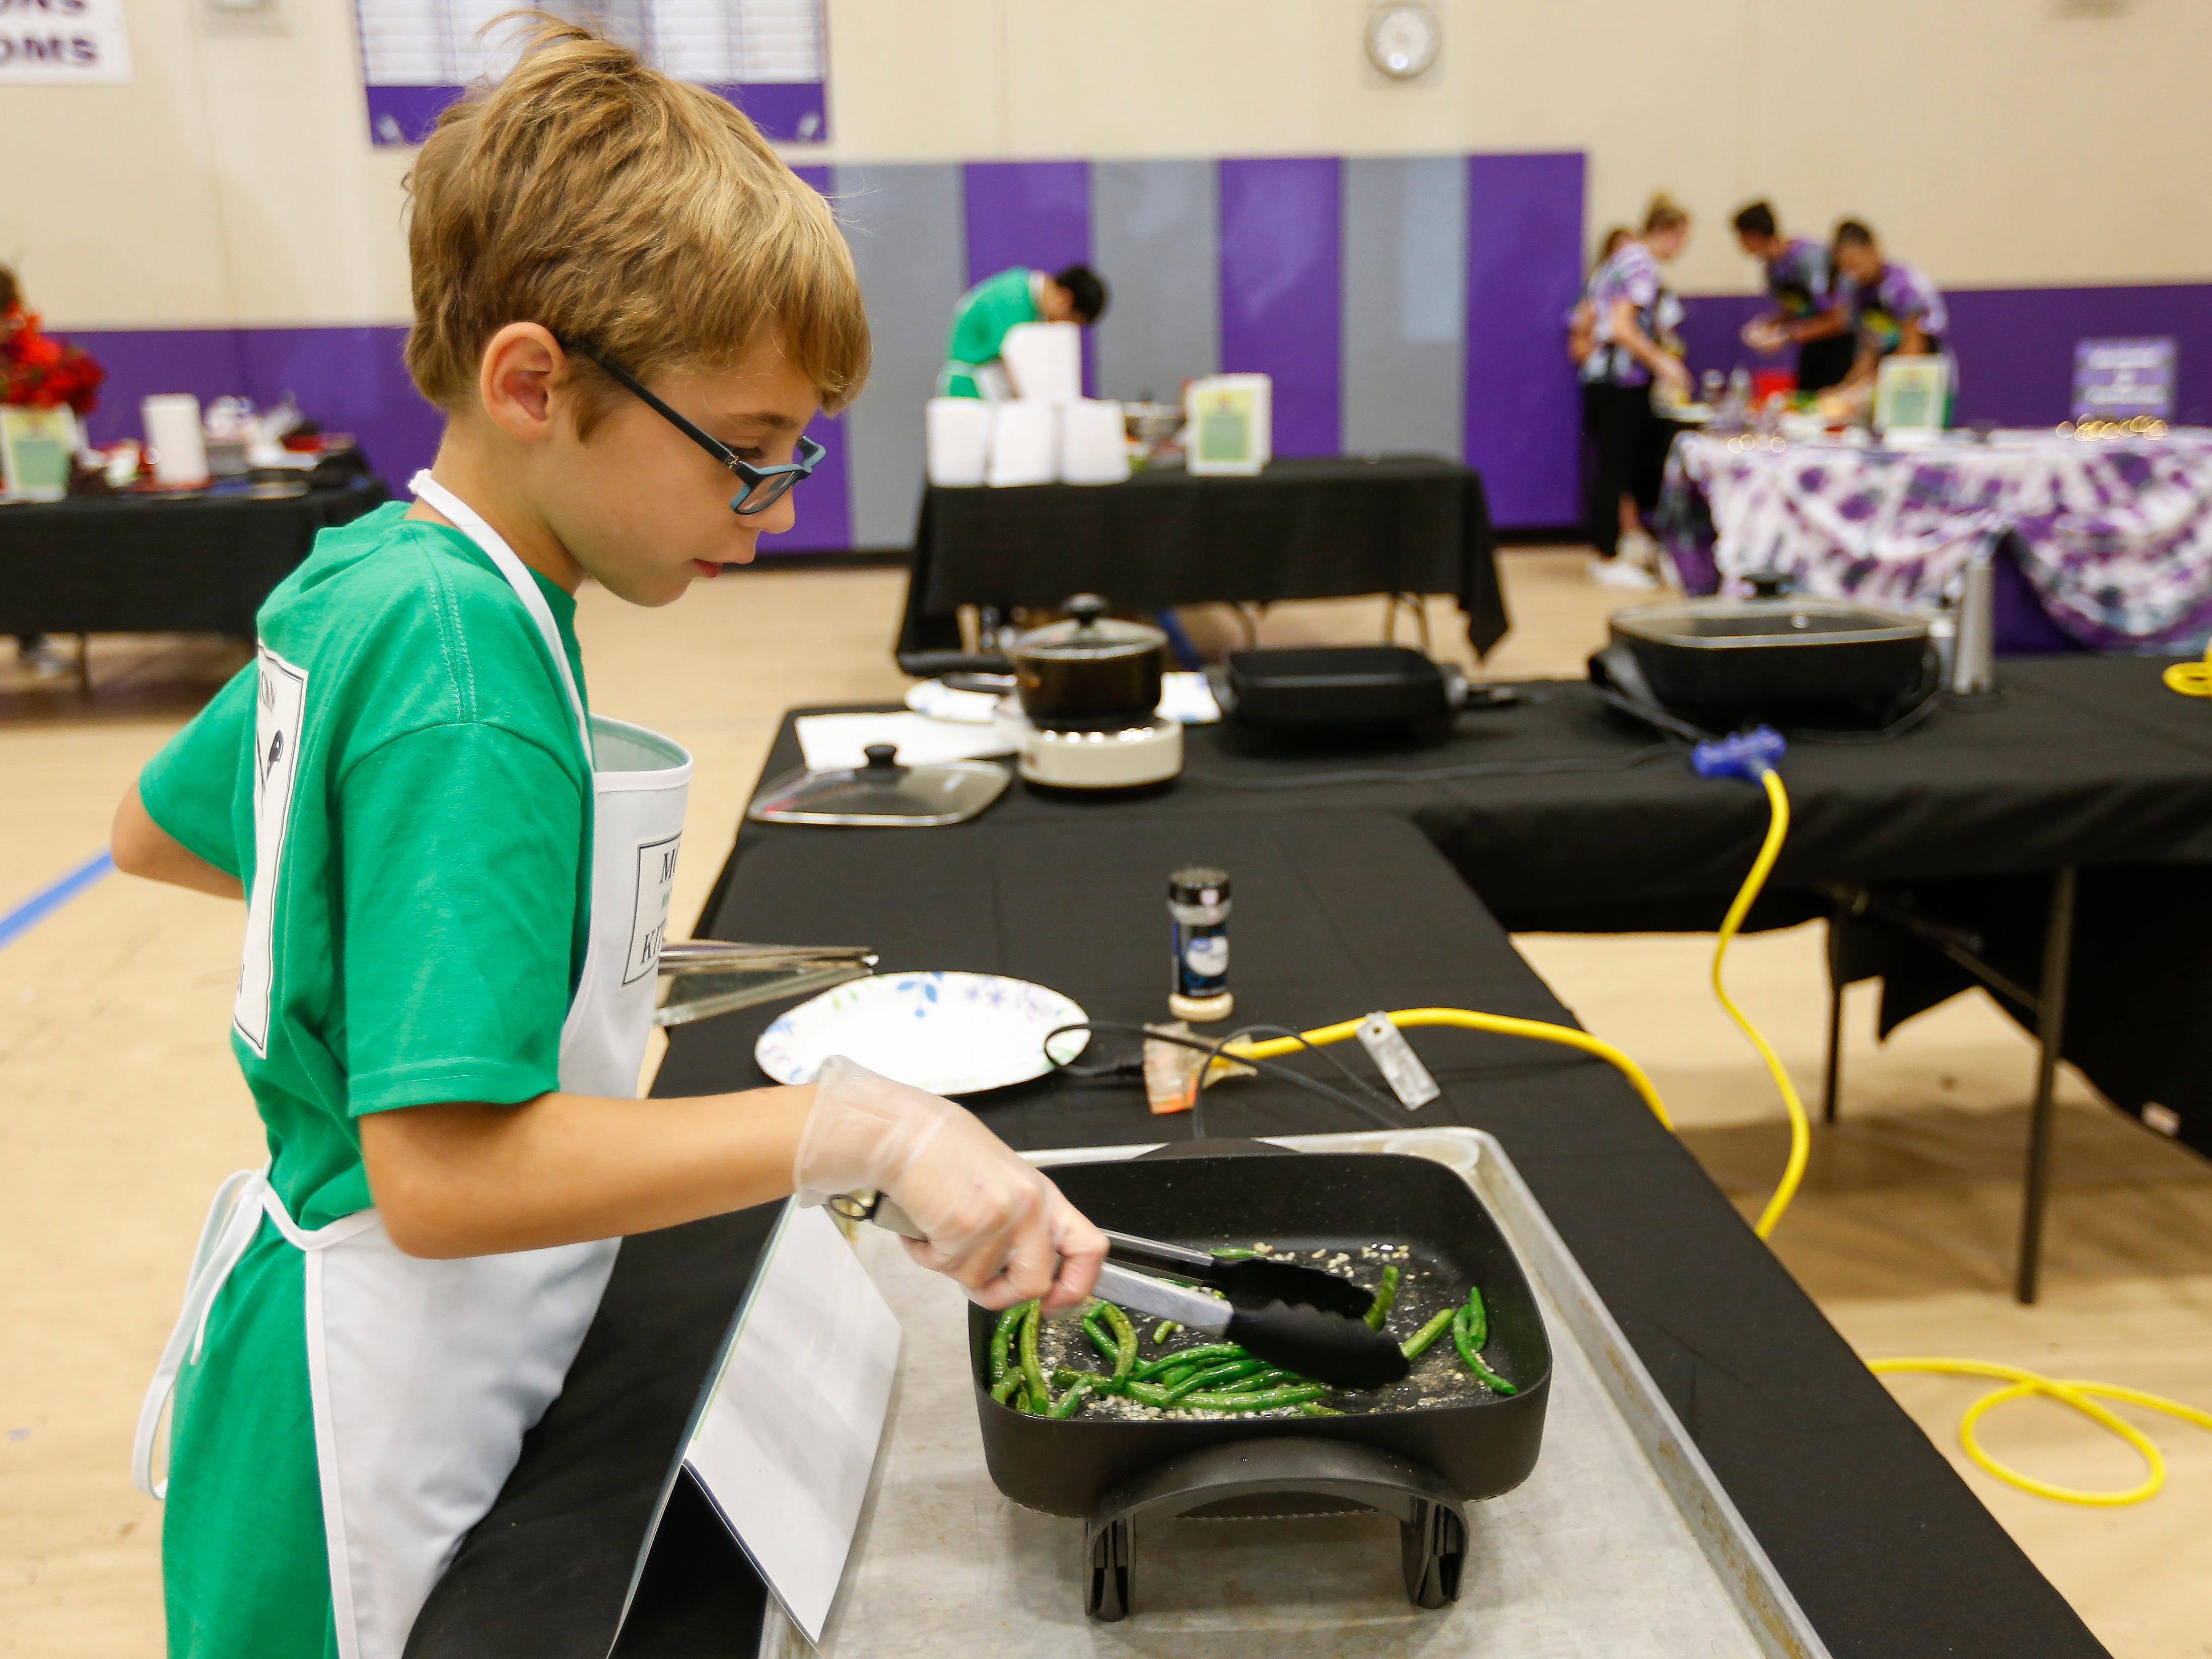 Ryan McDaniel, a student at Cherokee Middle School, sautes green beans during the third annual Junior Chef Competition at Hickory Hills Middle School on Saturday, Sept. 29, 2018.